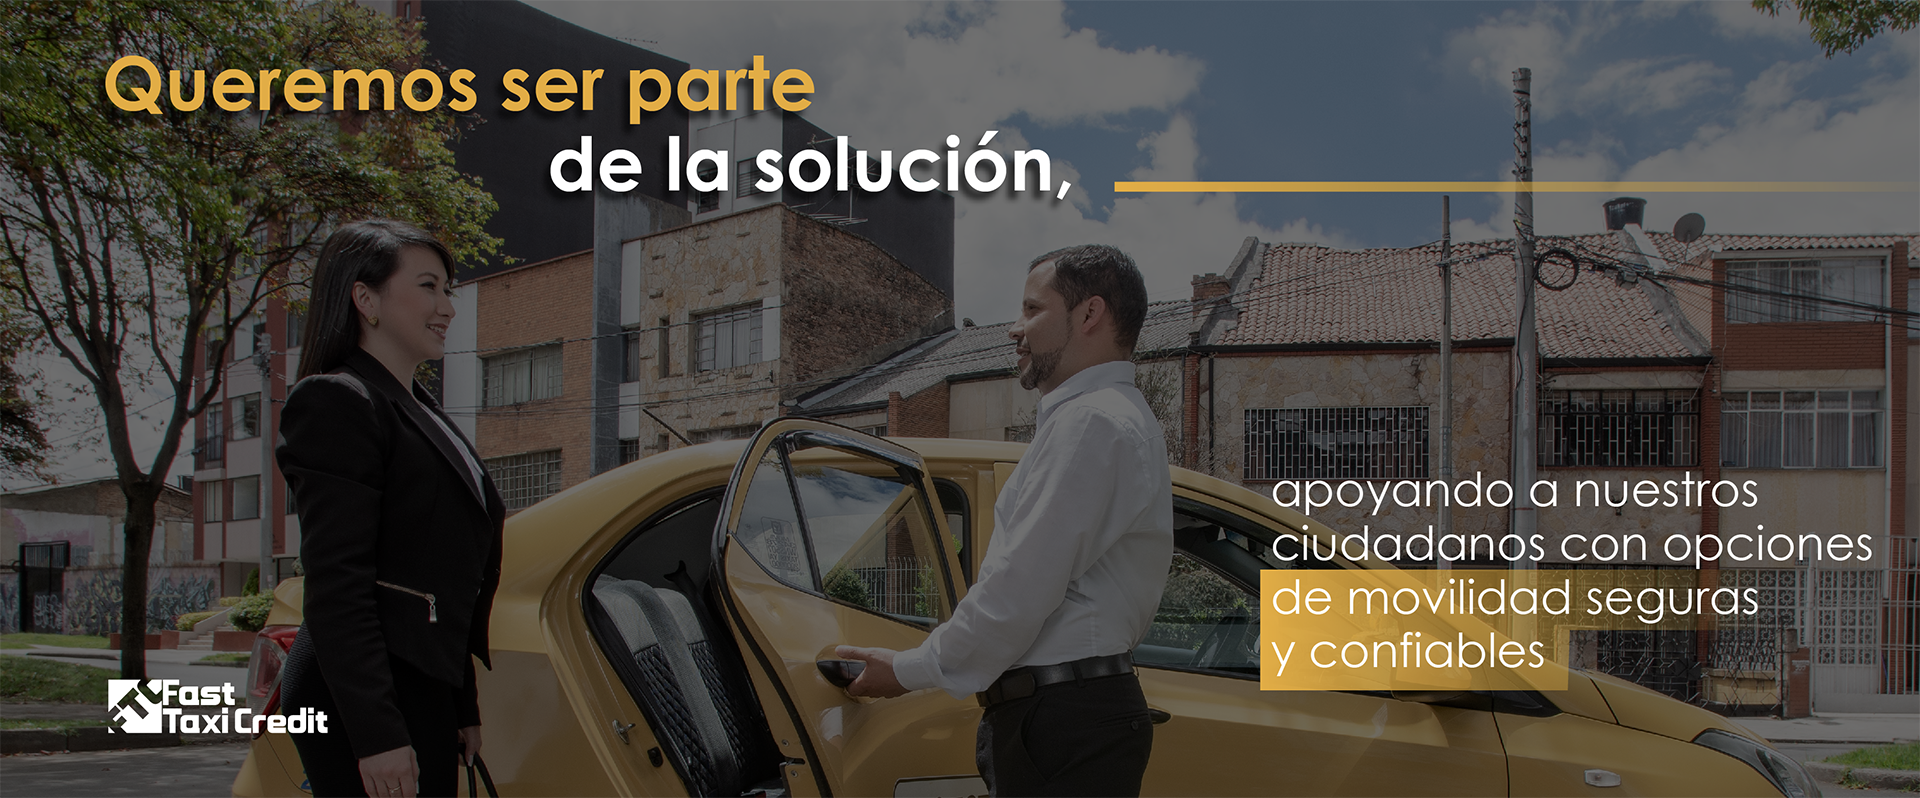 Fast-Taxi-Credit-Banner-Home-FTC-2-2020-08-24